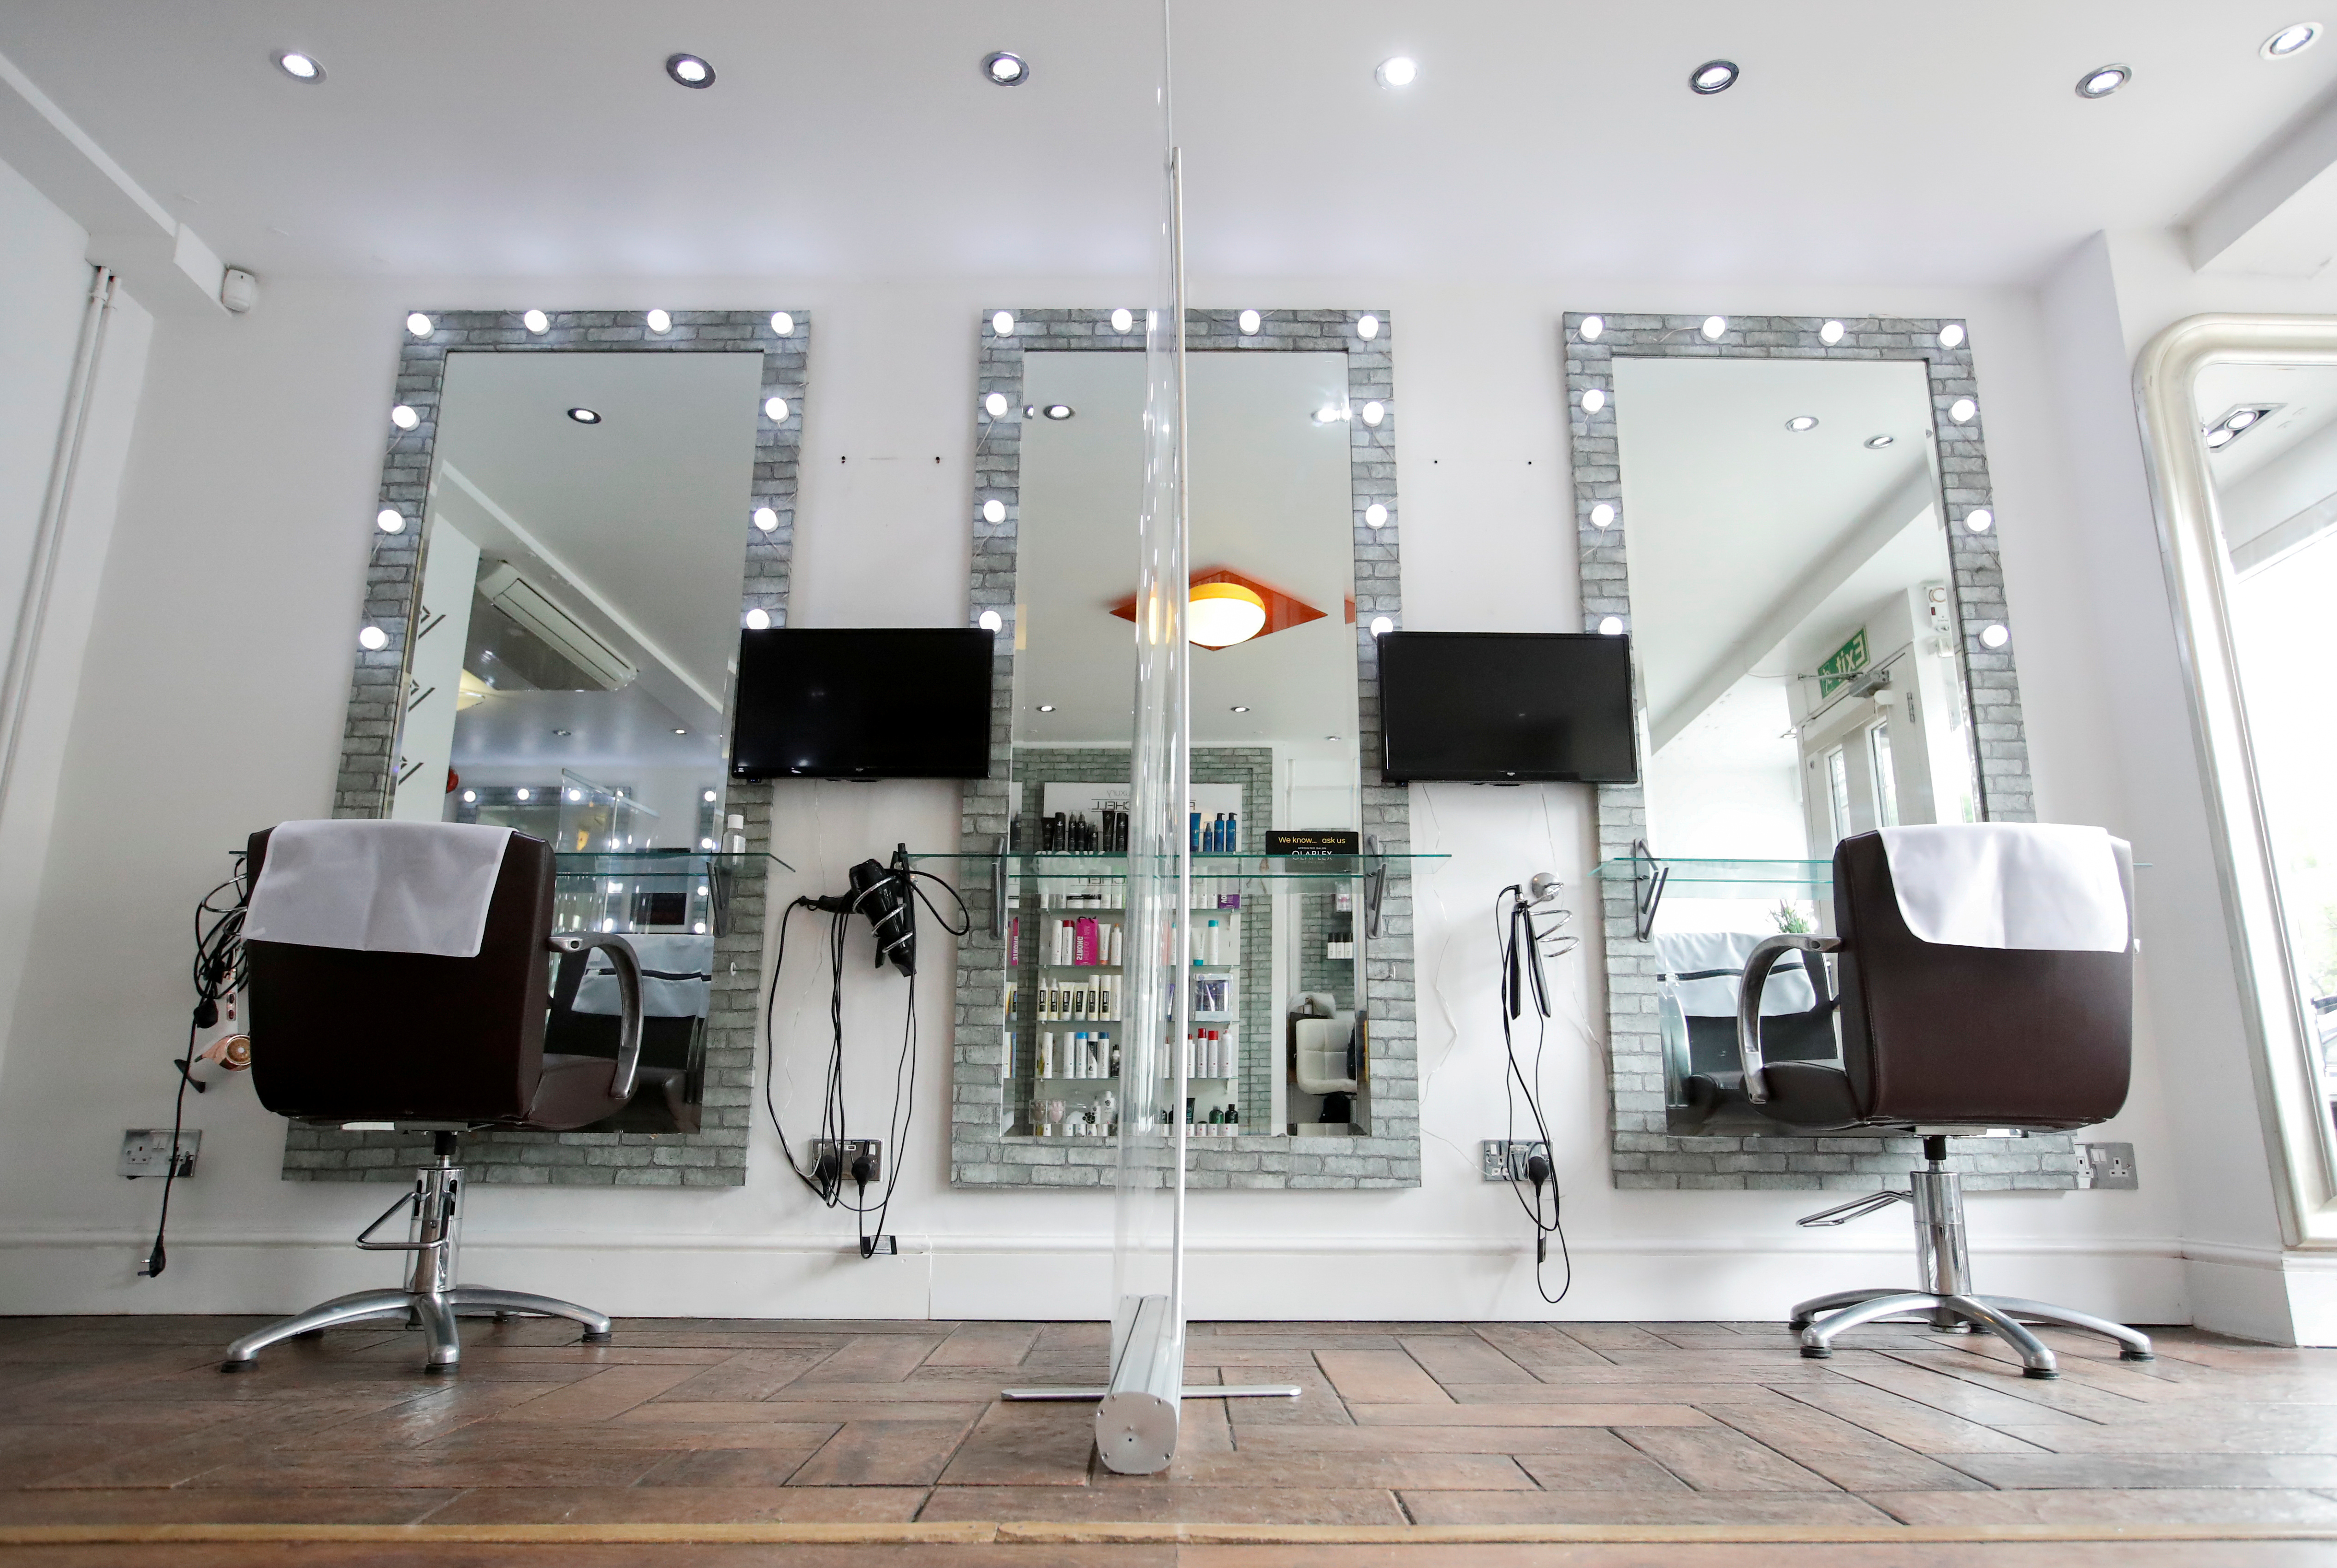 A view shows a divider screen in the Evolve hair salon as it is being prepared for a reopening on July 4, following the outbreak of the coronavirus disease (COVID-19), in Fenny Stratford in Milton Keynes, Britain July 2, 2020. REUTERS/Andrew Boyers/File Photo